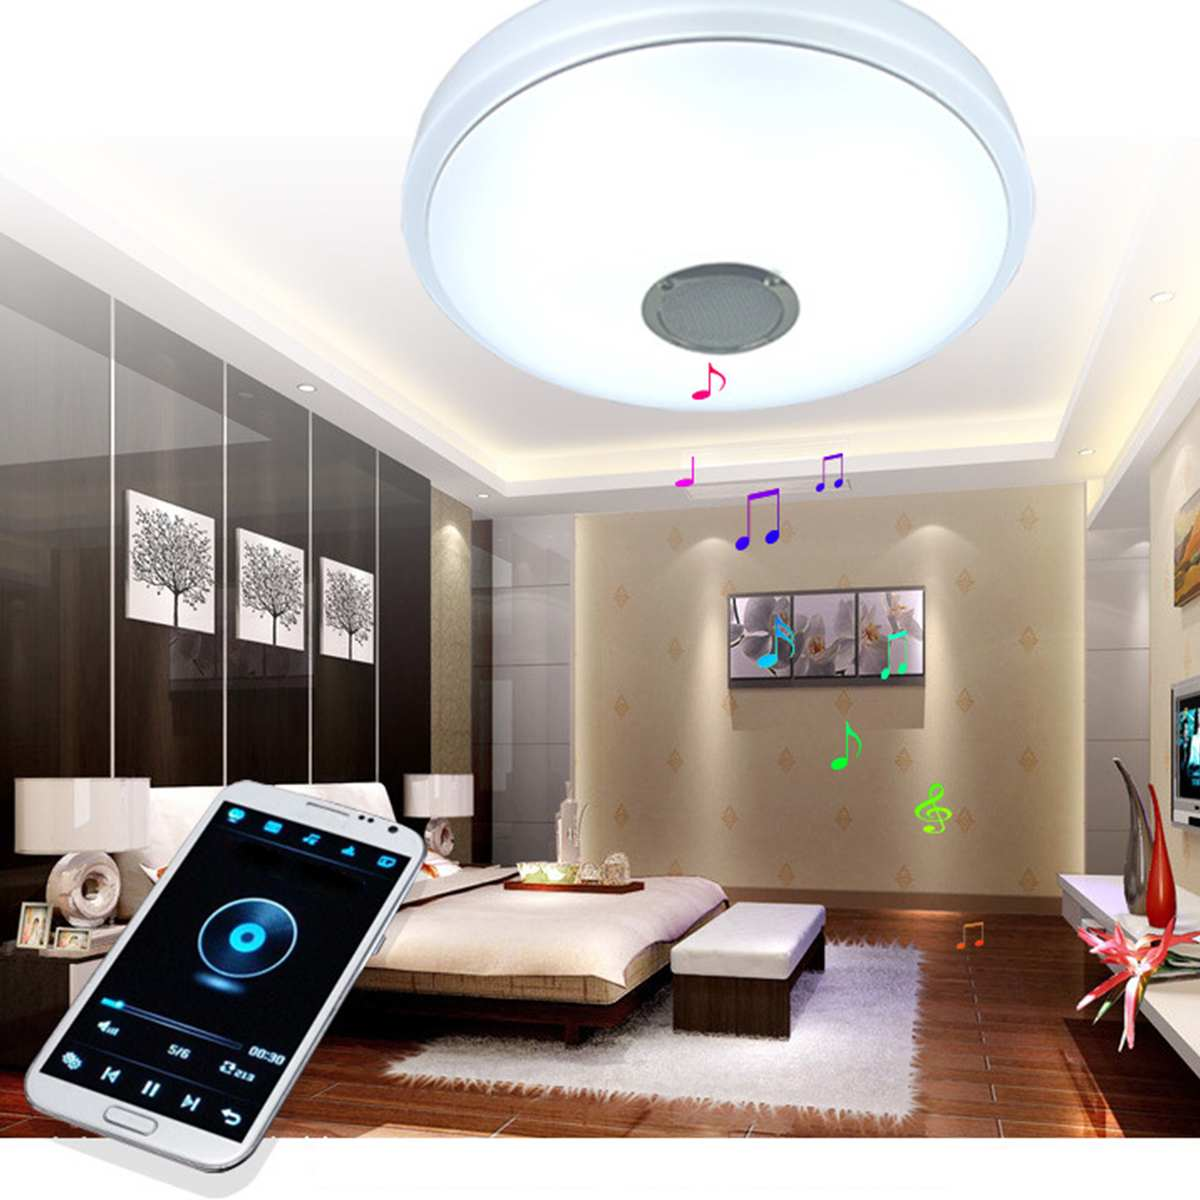 24W Modern Acrylic LED Ceiling Light bluetooth Speaker Music Player RGB Ceiling Lamp Lights for Living Room Bedroom Lighting24W Modern Acrylic LED Ceiling Light bluetooth Speaker Music Player RGB Ceiling Lamp Lights for Living Room Bedroom Lighting